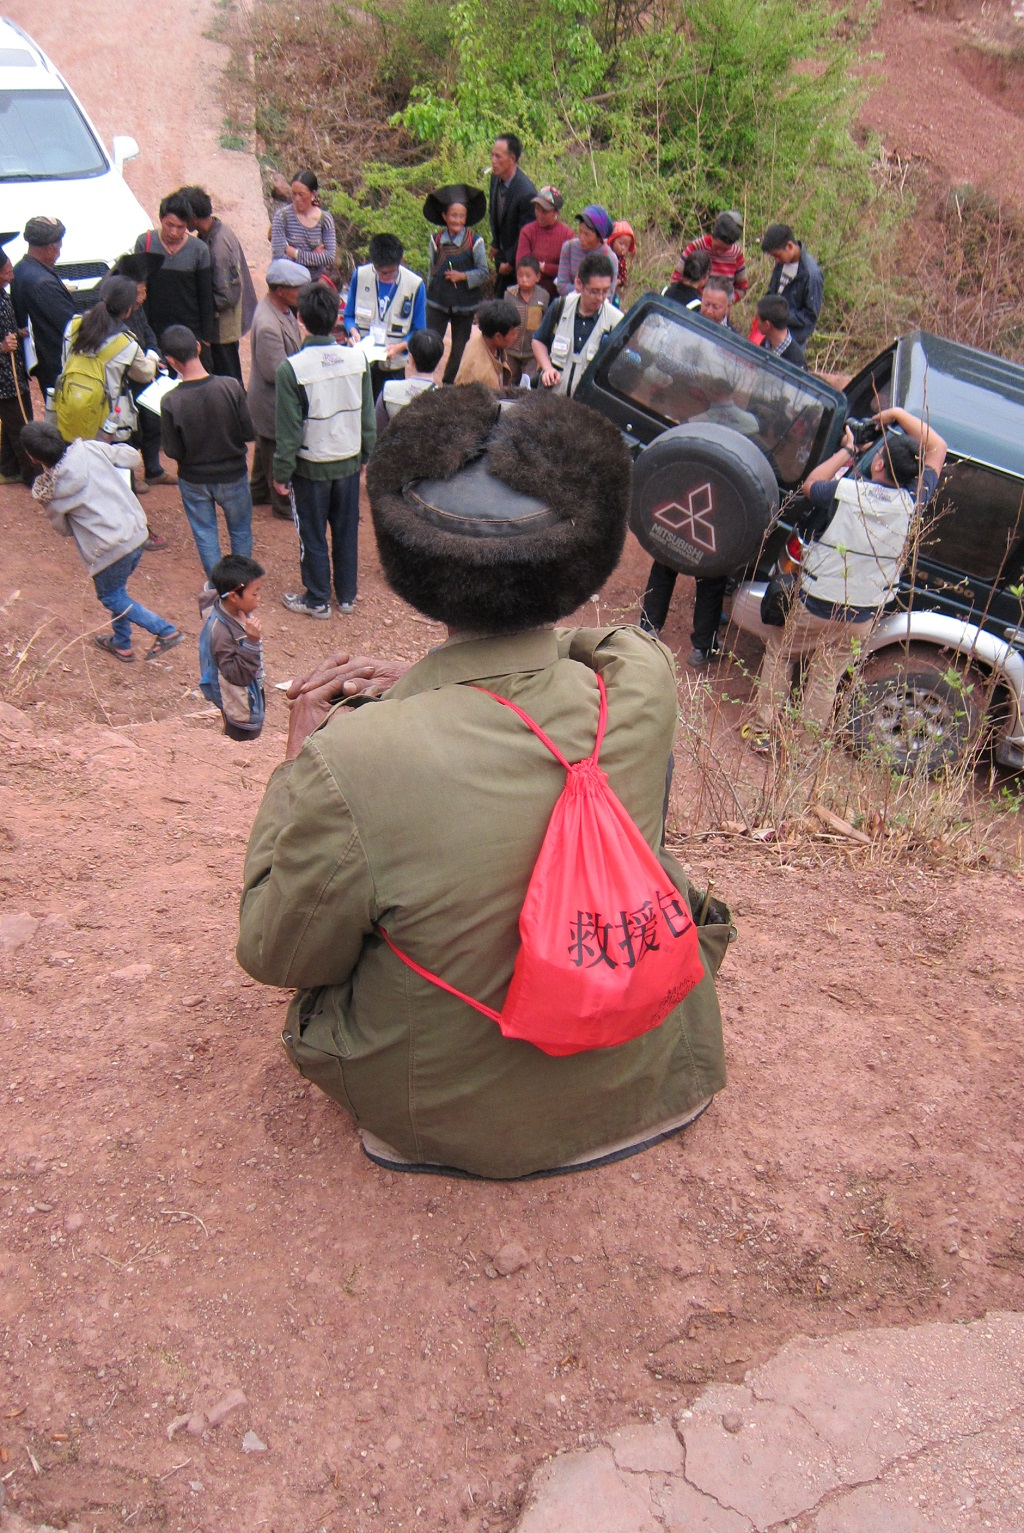 A villager wearing the rescue bag